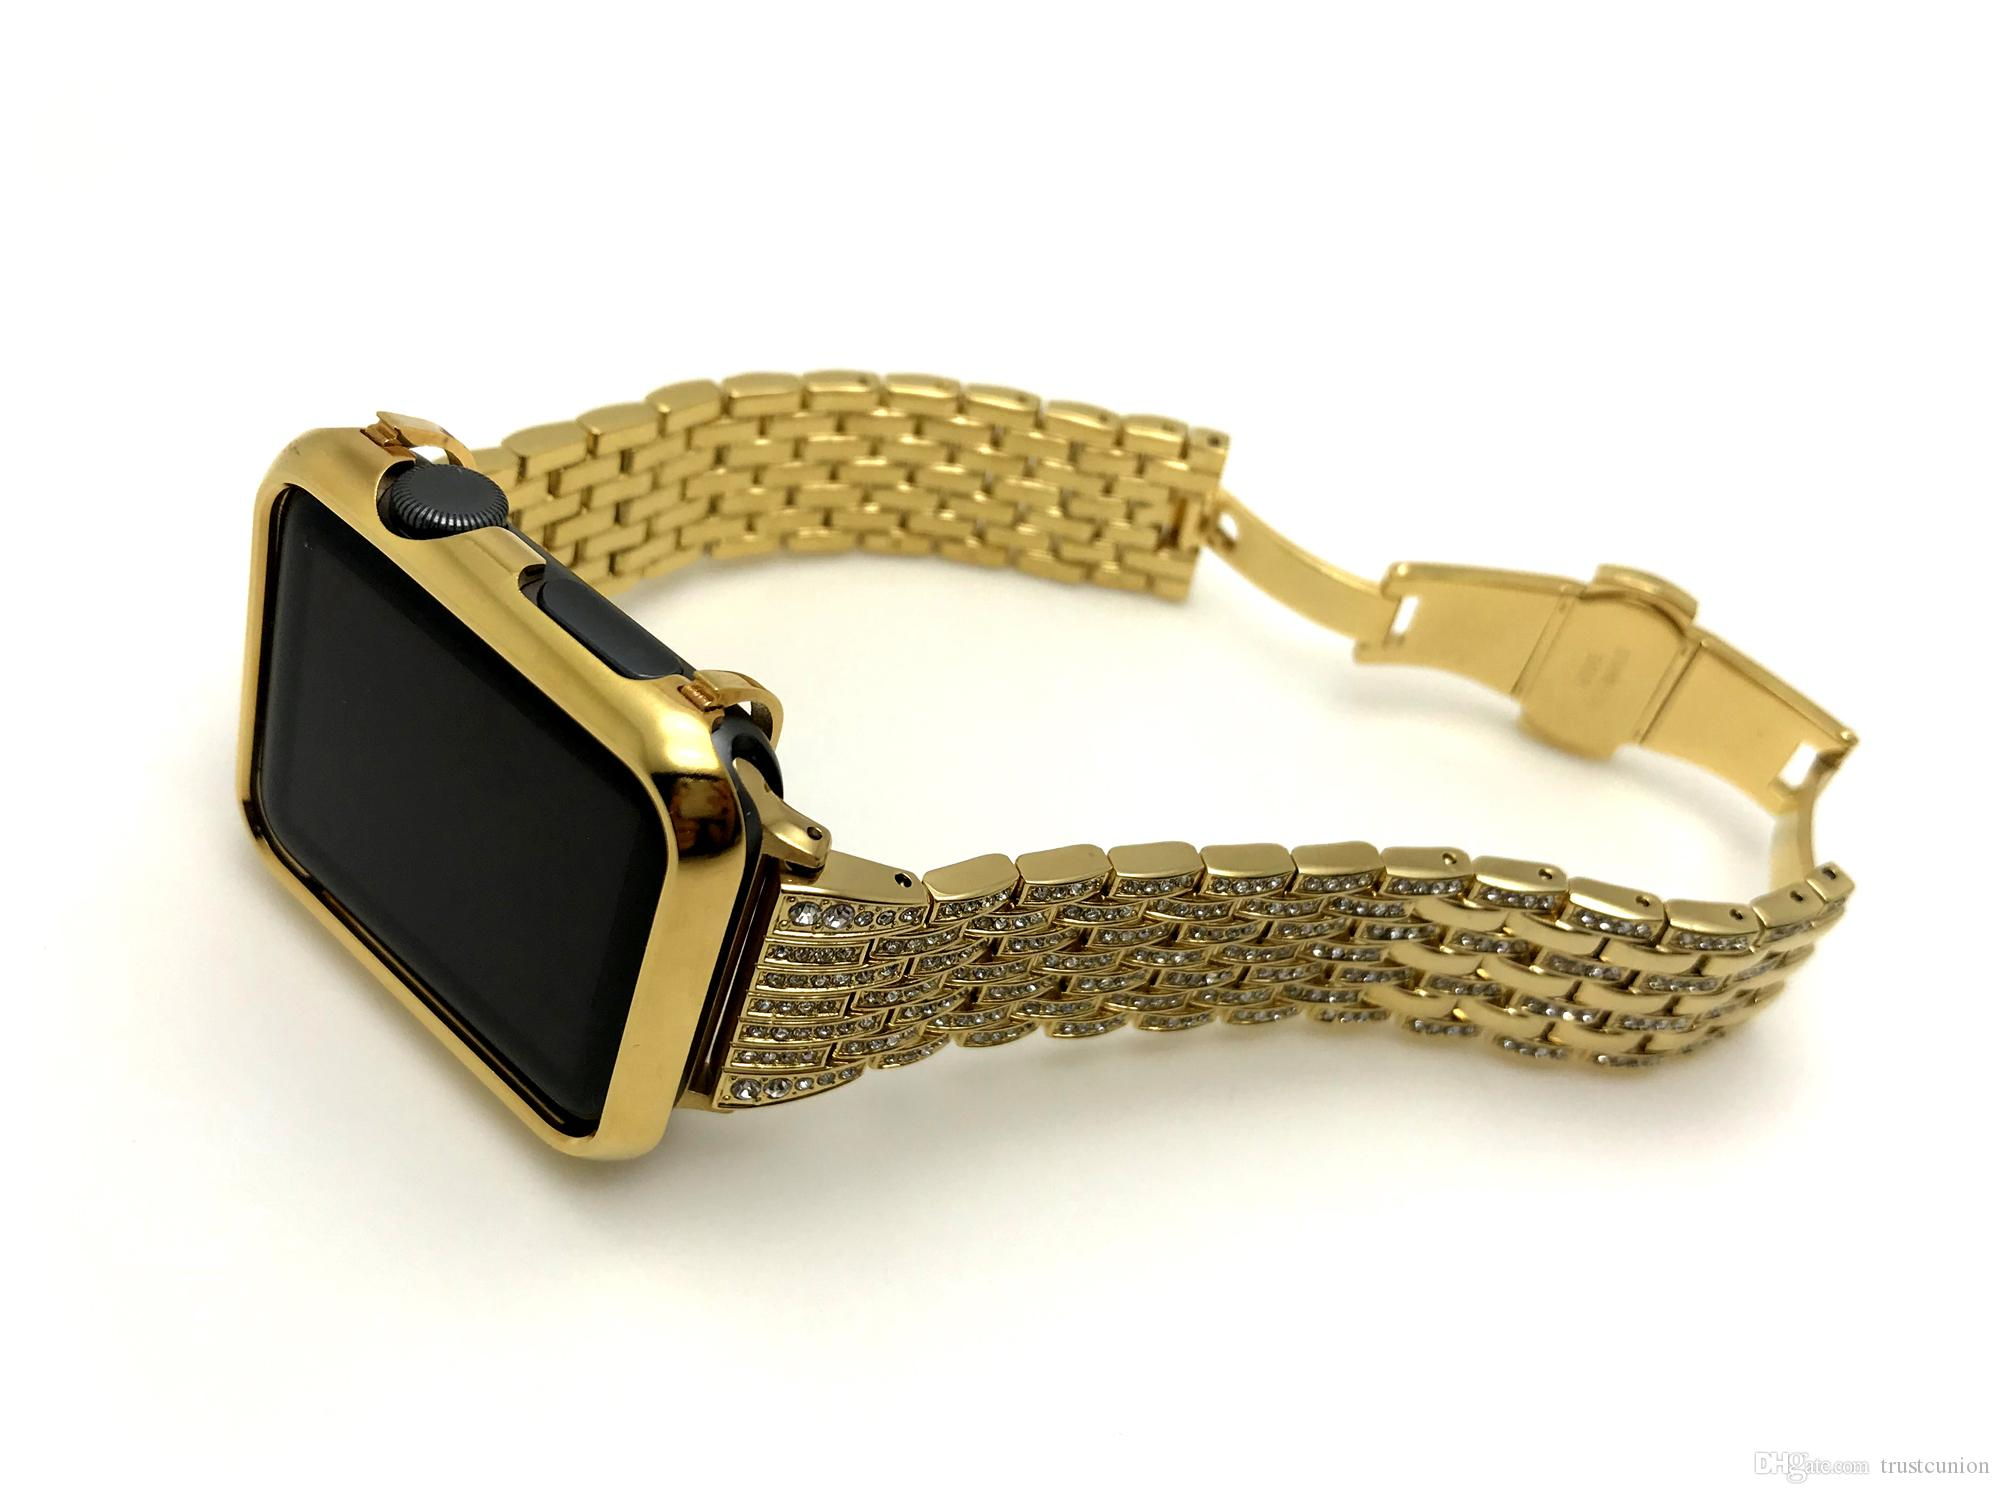 promo code 0fb4f dea7f 24K Gold Plated Apple Watch Bezel Cover Case Gold Diamonds Stainless Steel  Watch Band for Apple Watch S1/S2/S3 42mm (2in1 Set)